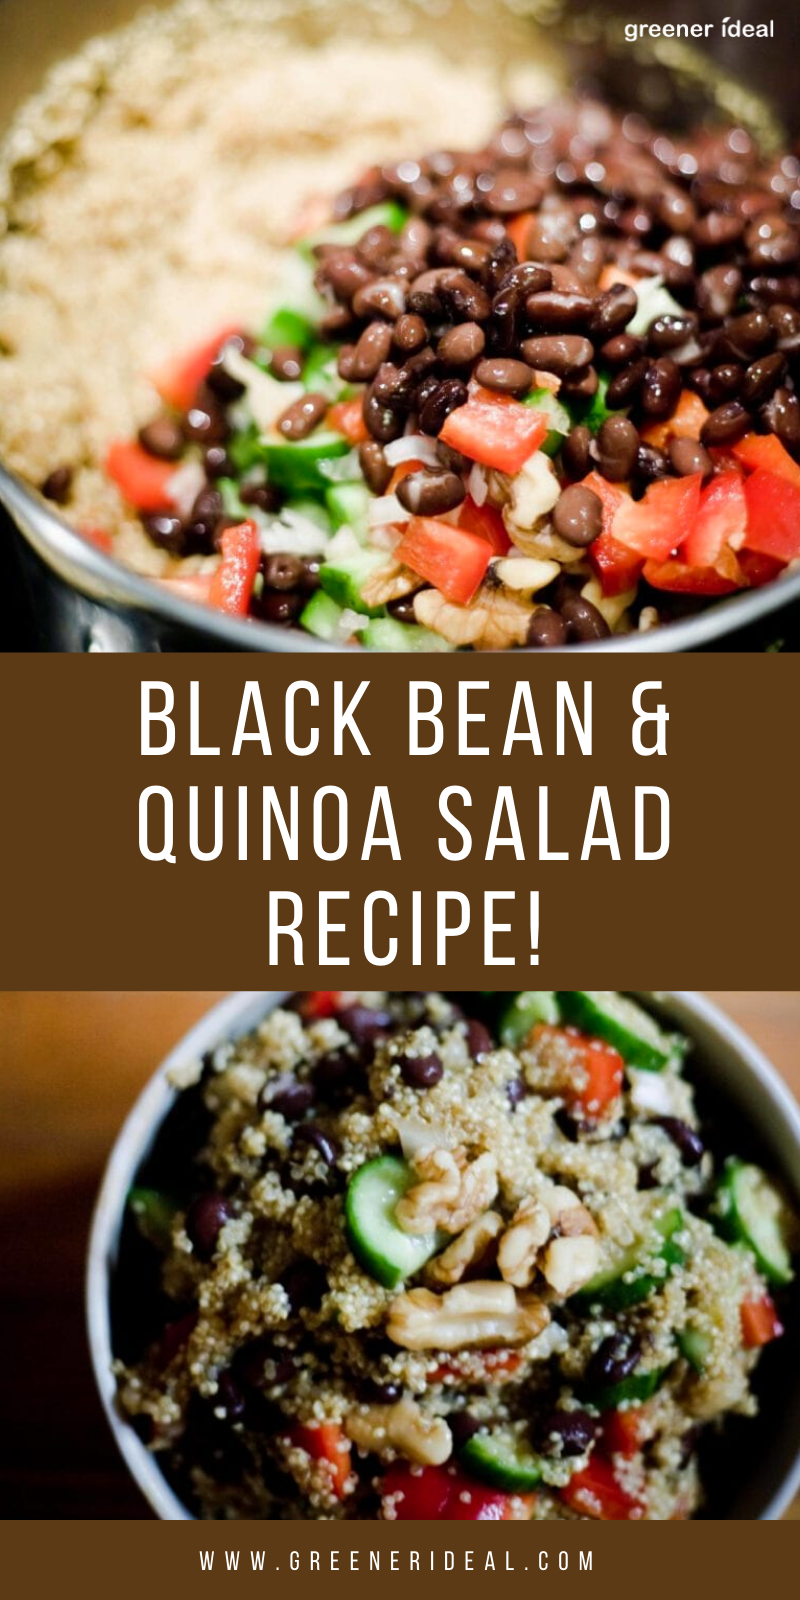 Black Bean Quinoa Salad Recipe Recipe In 2020 Clean Eating Recipes For Dinner Vegan Recipes Healthy Plant Based Recipes Dinner